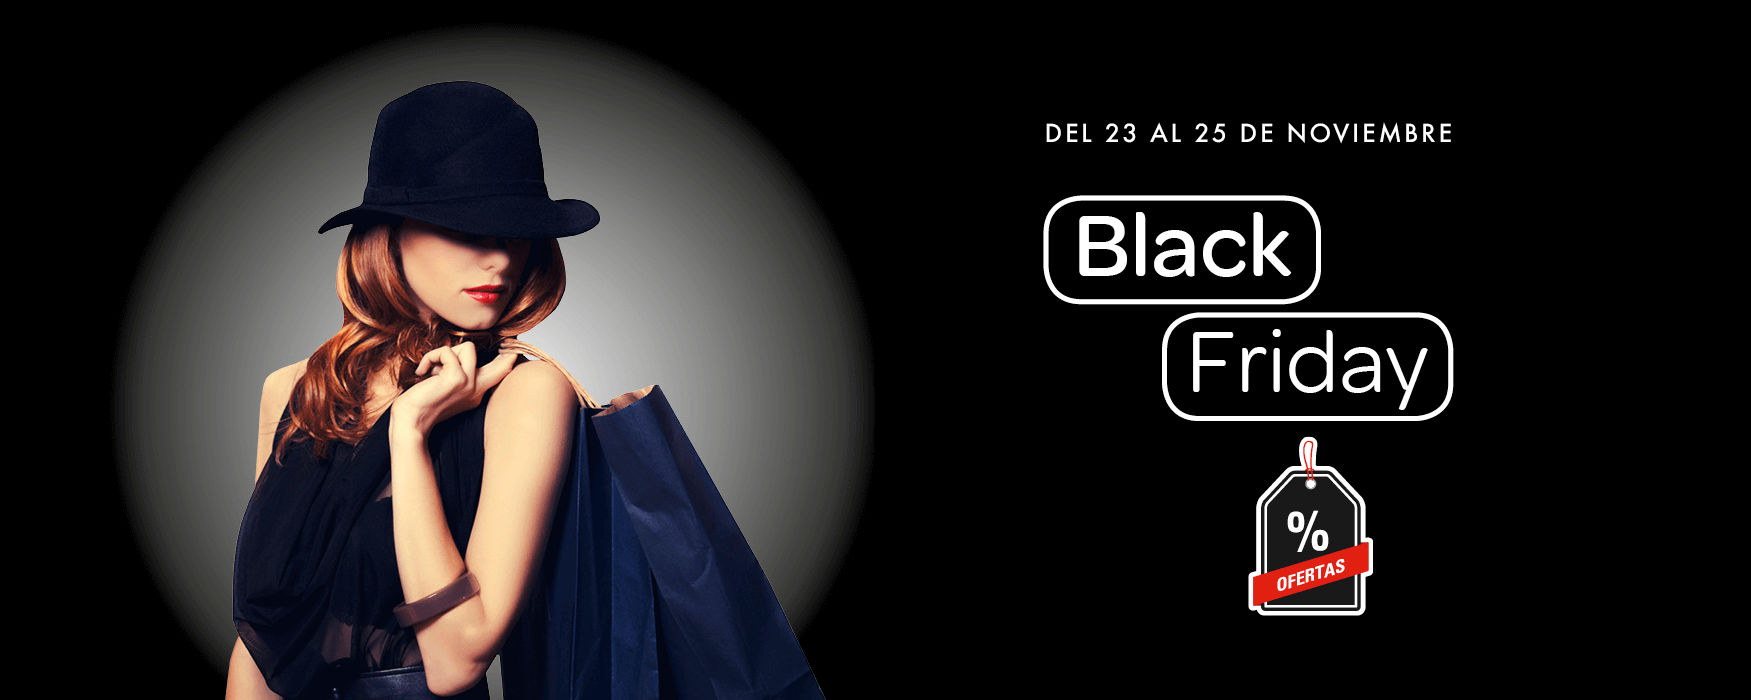 Cabecera-Web-Black-Friday